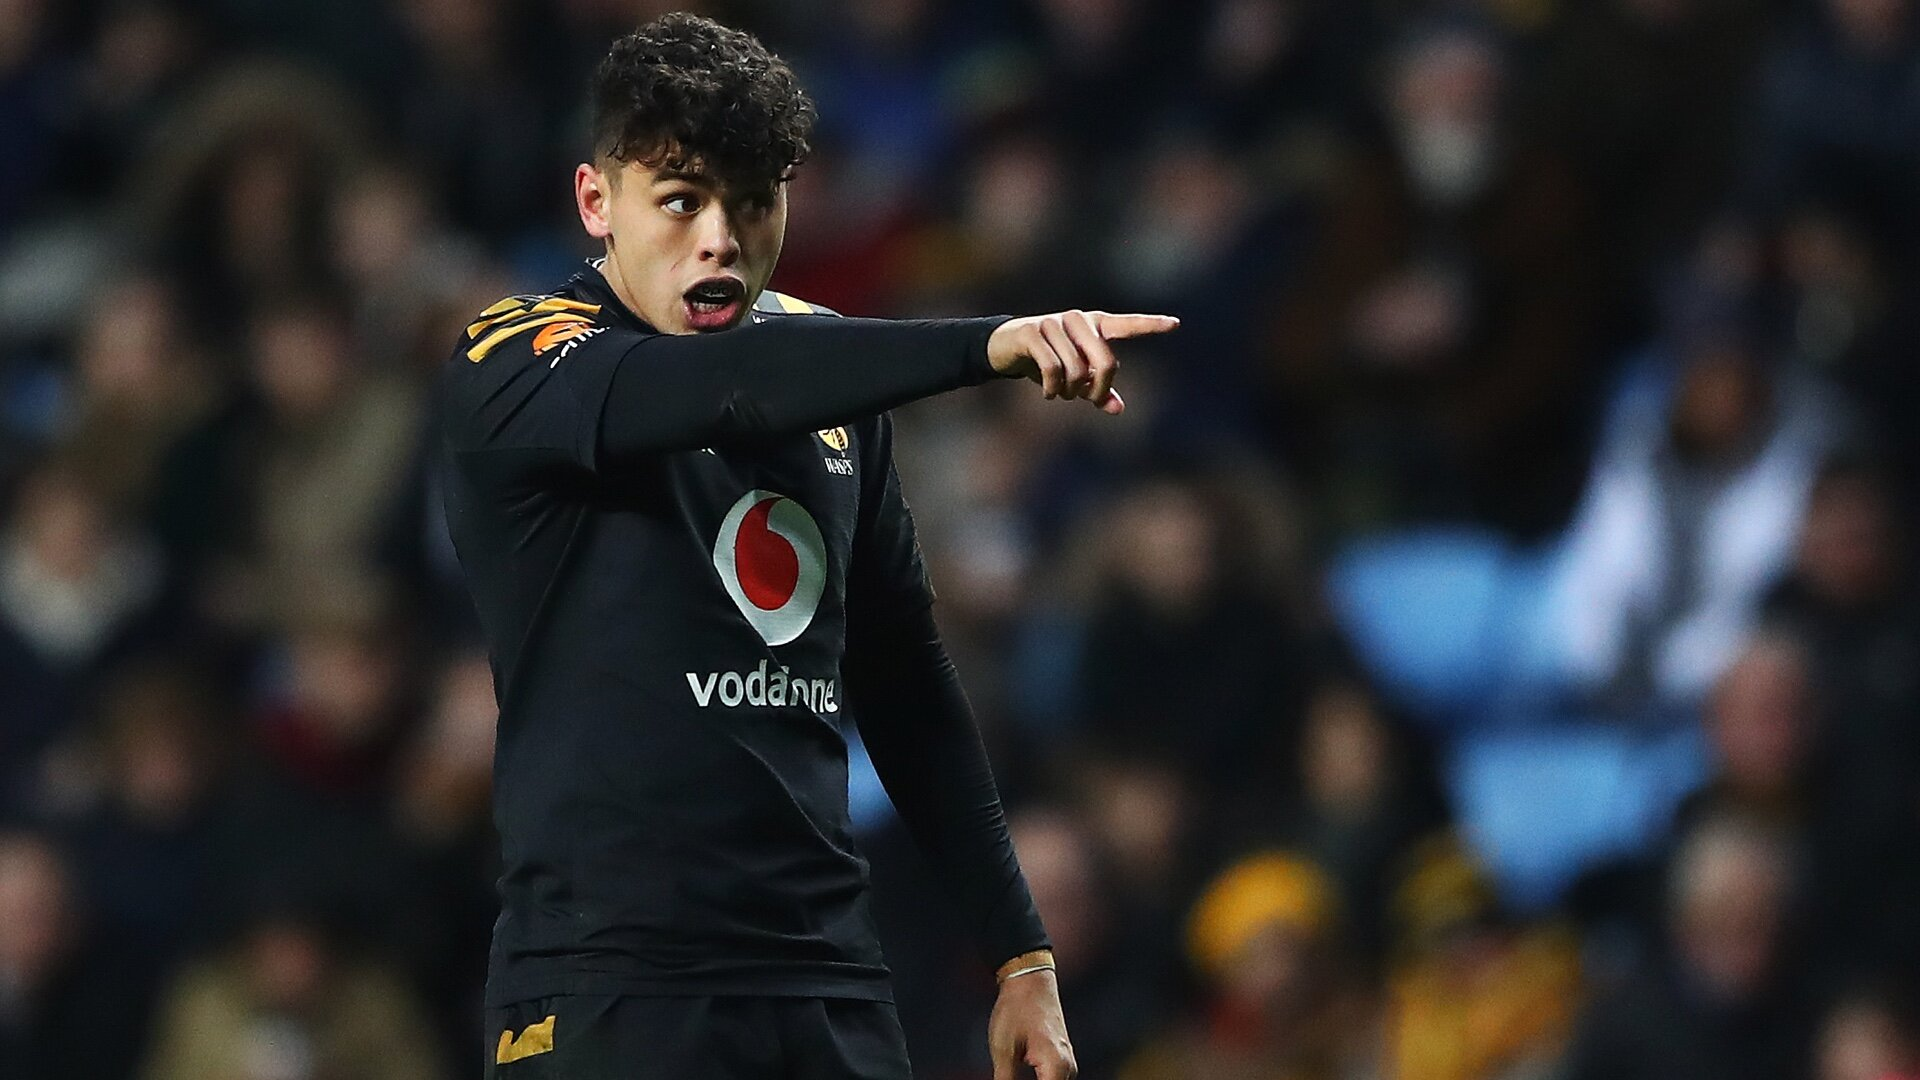 'Look at the example of Daniel Carter. He was at his best at 35' - Jones expecting slow introduction for new England fly-half Jacob Umaga